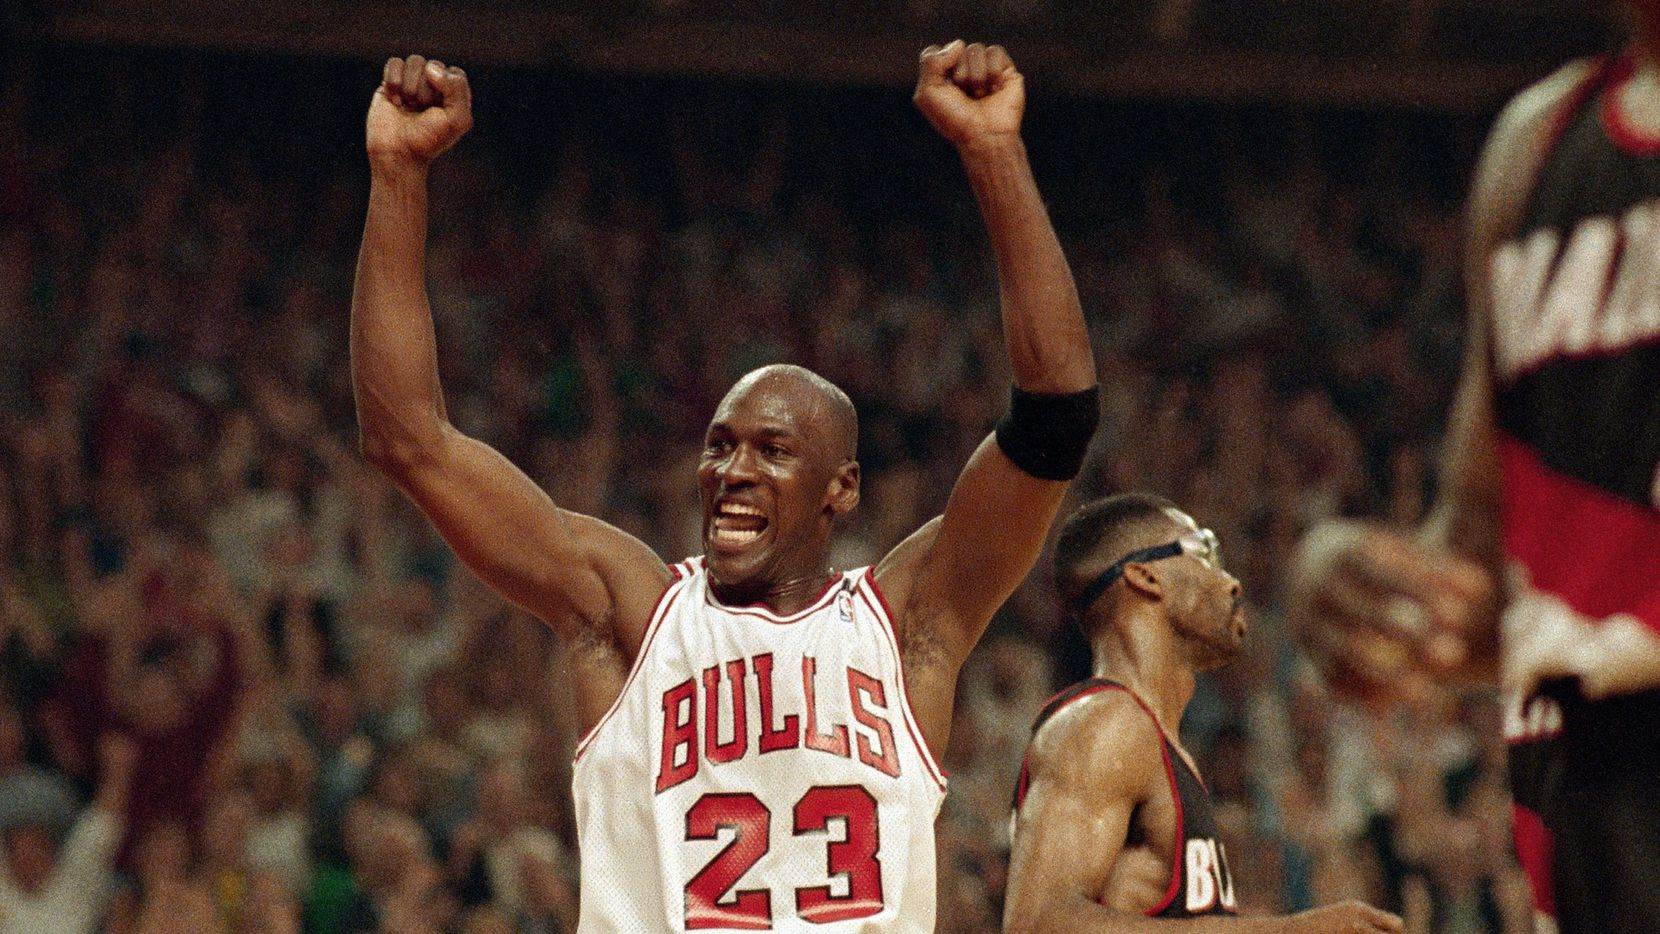 In this June 14, 1992, file photo, Michael Jordan celebrates the Bulls win over the Portland Trail Blazers in the NBA Finals in Chicago. Decades after Jordan's groundbreaking departure from college, March Madness and the NBA's mega-millions have taken all the novelty out of leaving early for the pros.